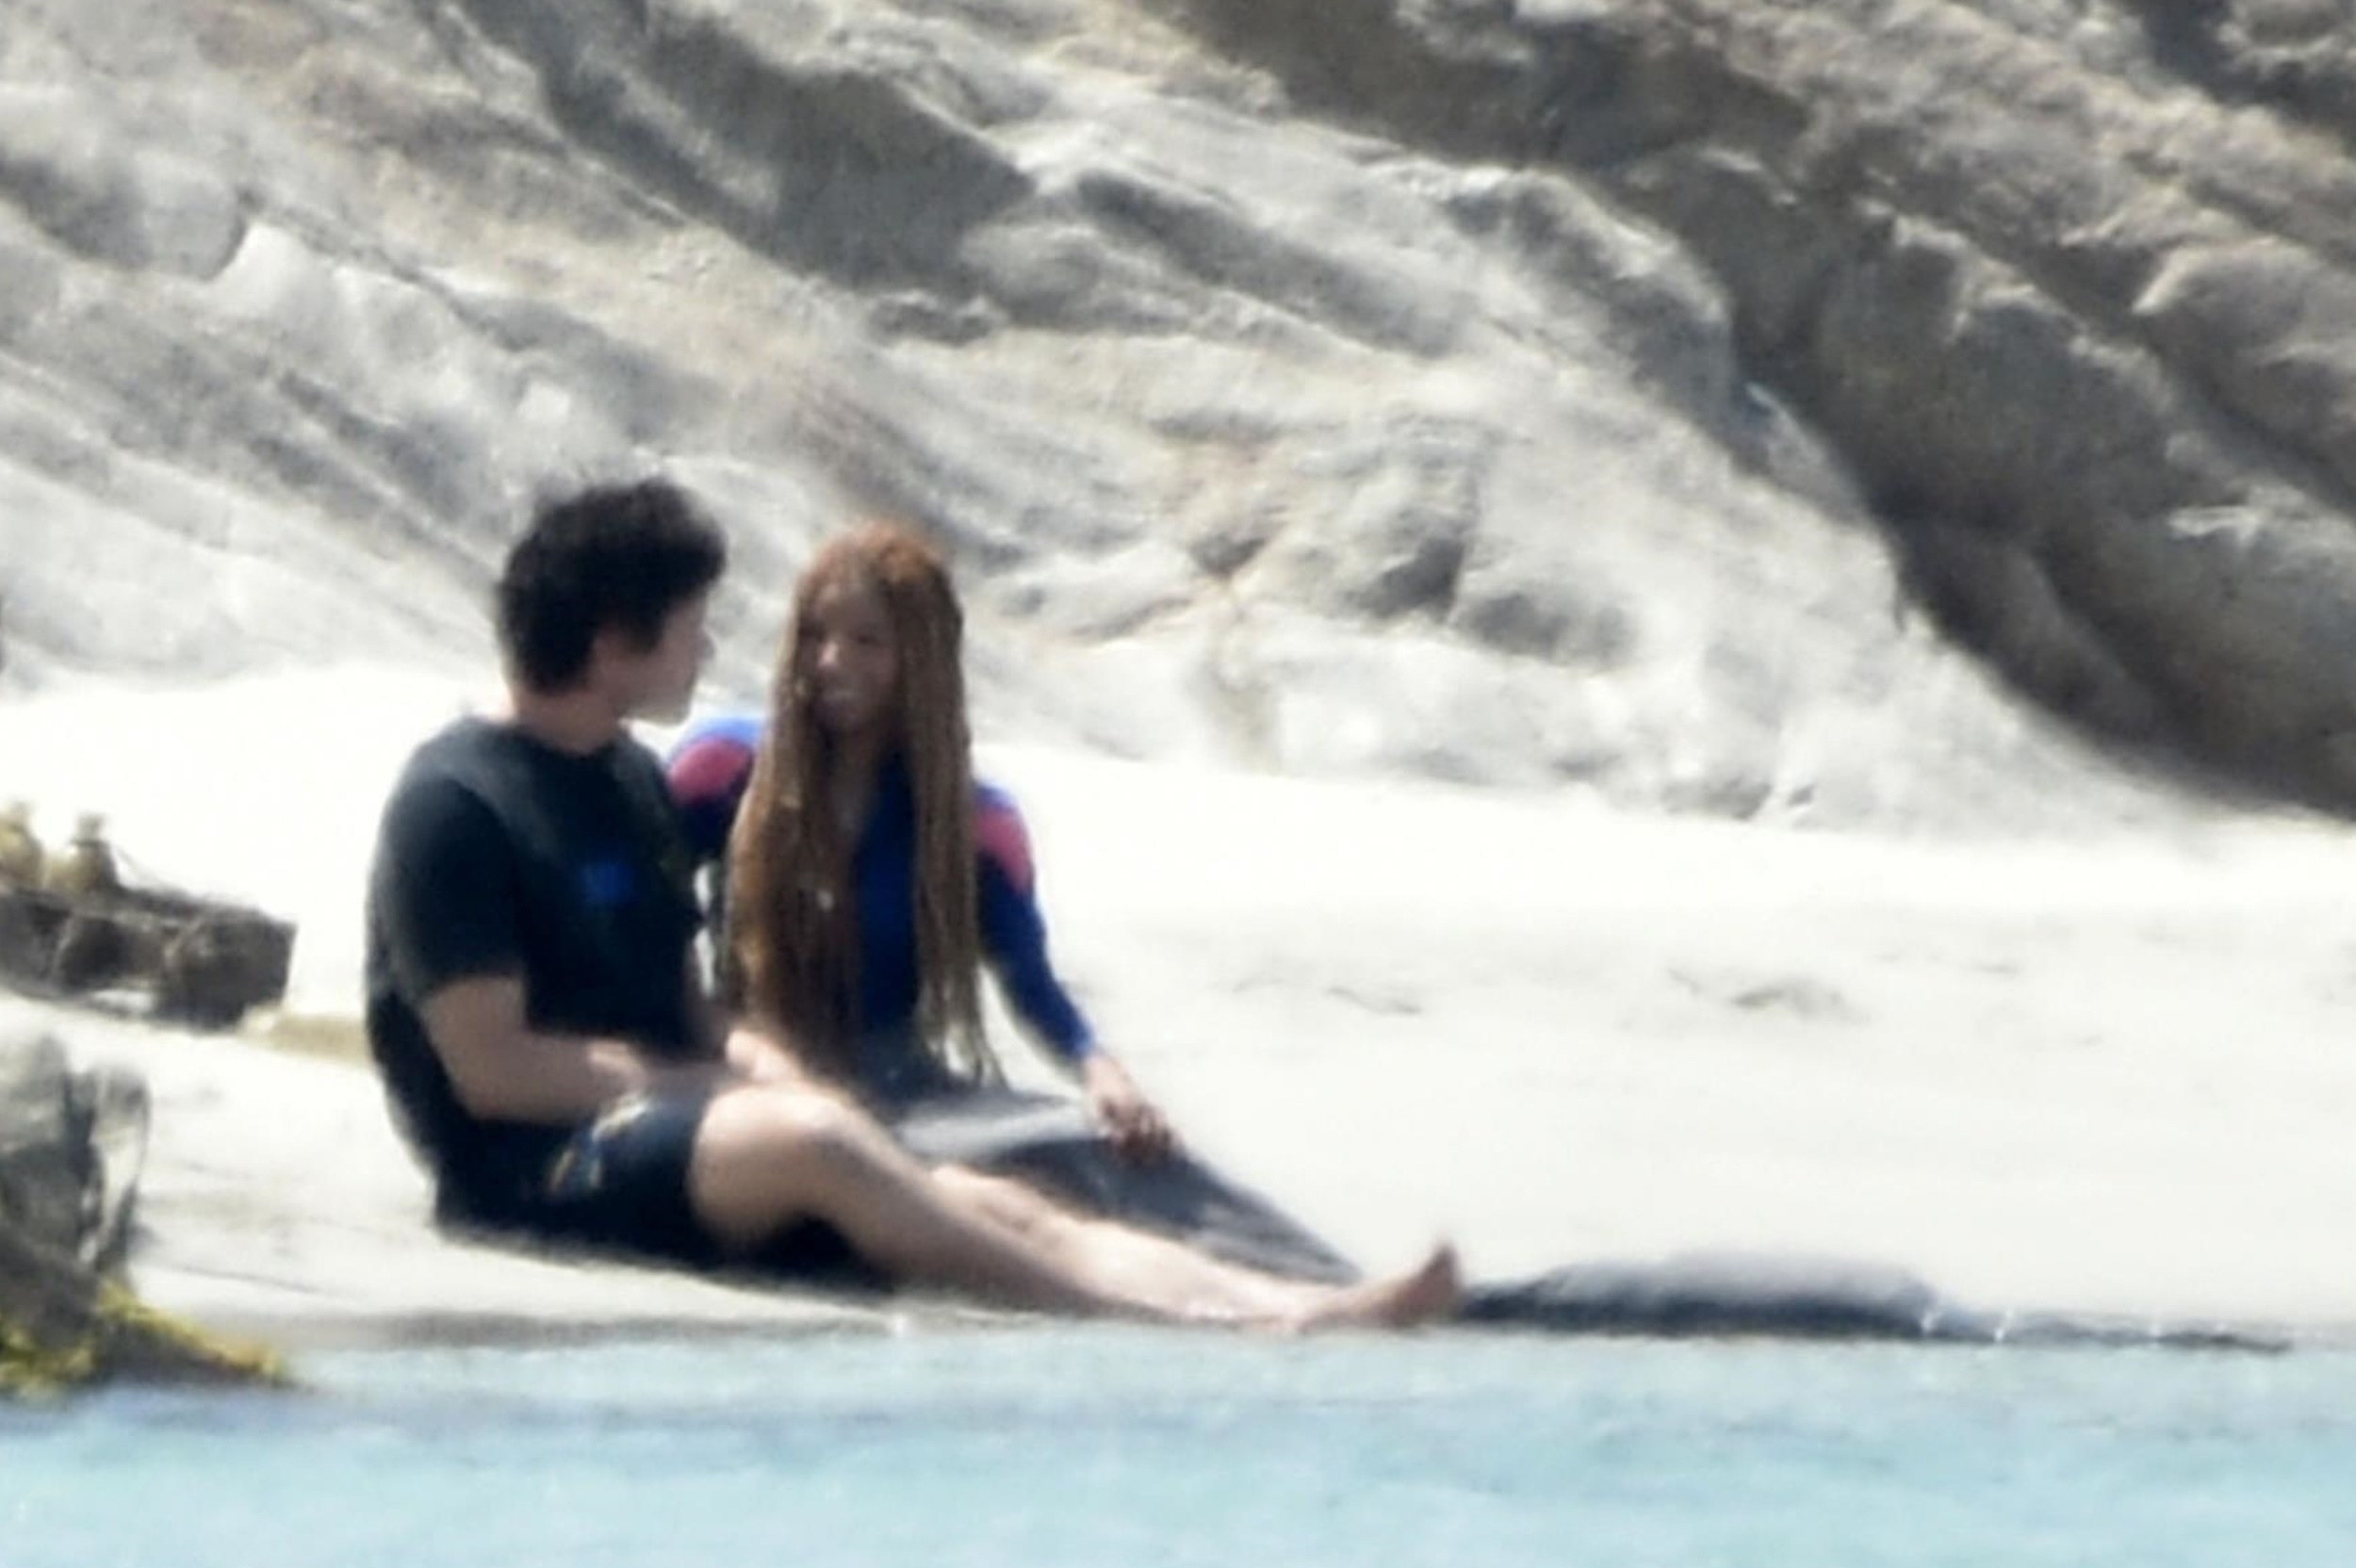 Jonah and Halle sitting near the water and looking at each other